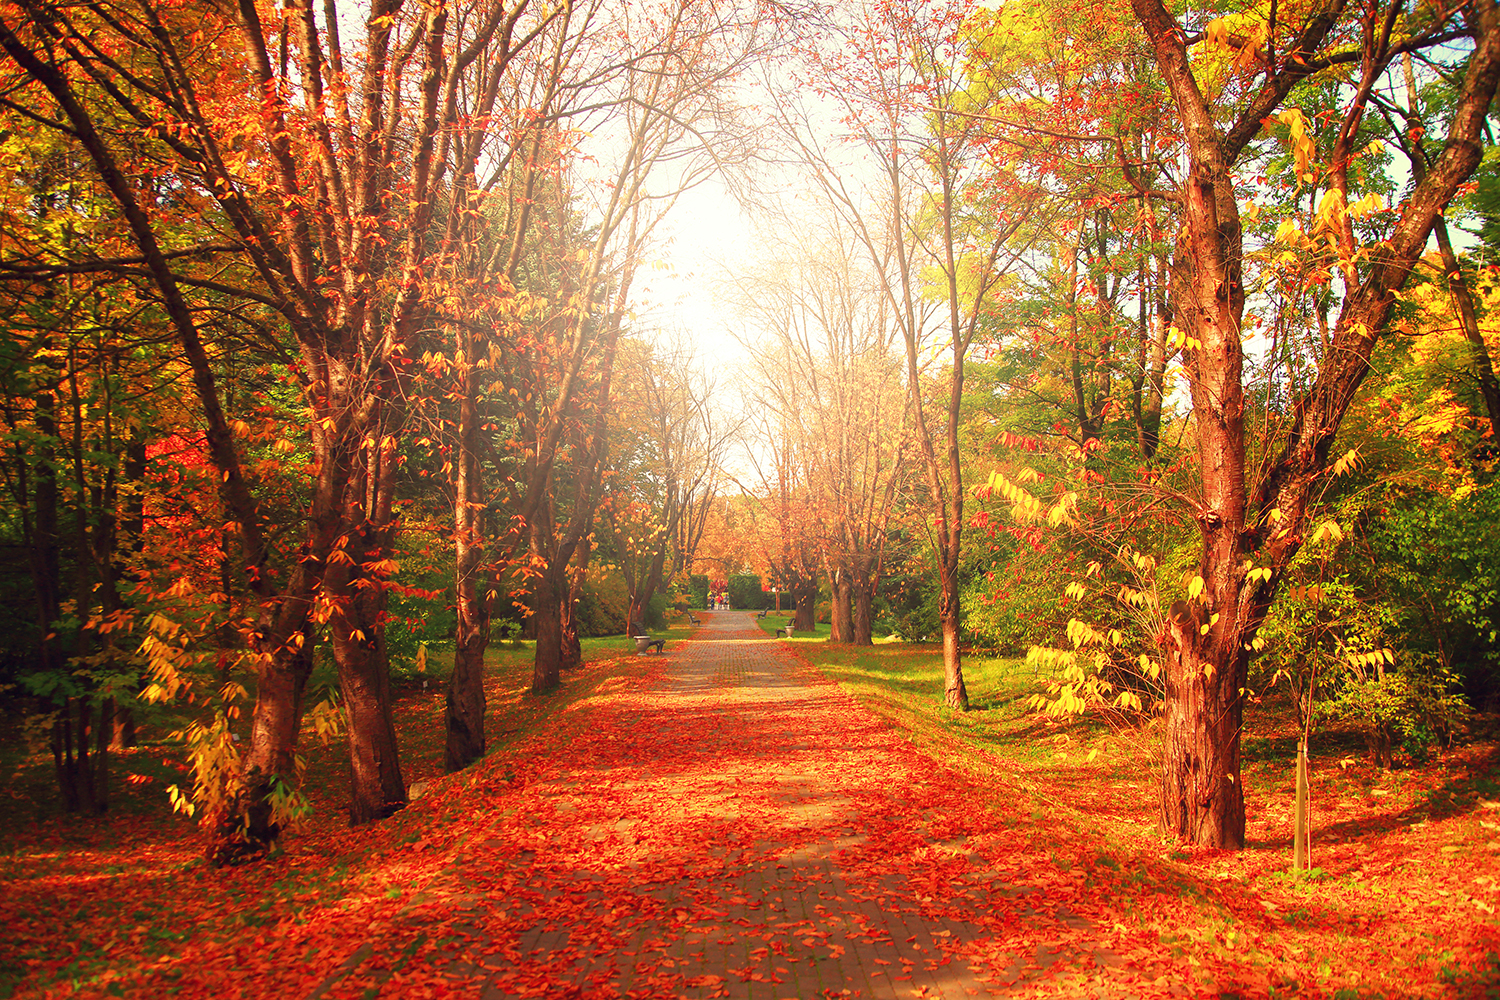 Order-Autumn-Park-Pathway-to-create-fantastic-wall-decor-in-your-living-space-or-browse-th-wallpaper-wp5407624